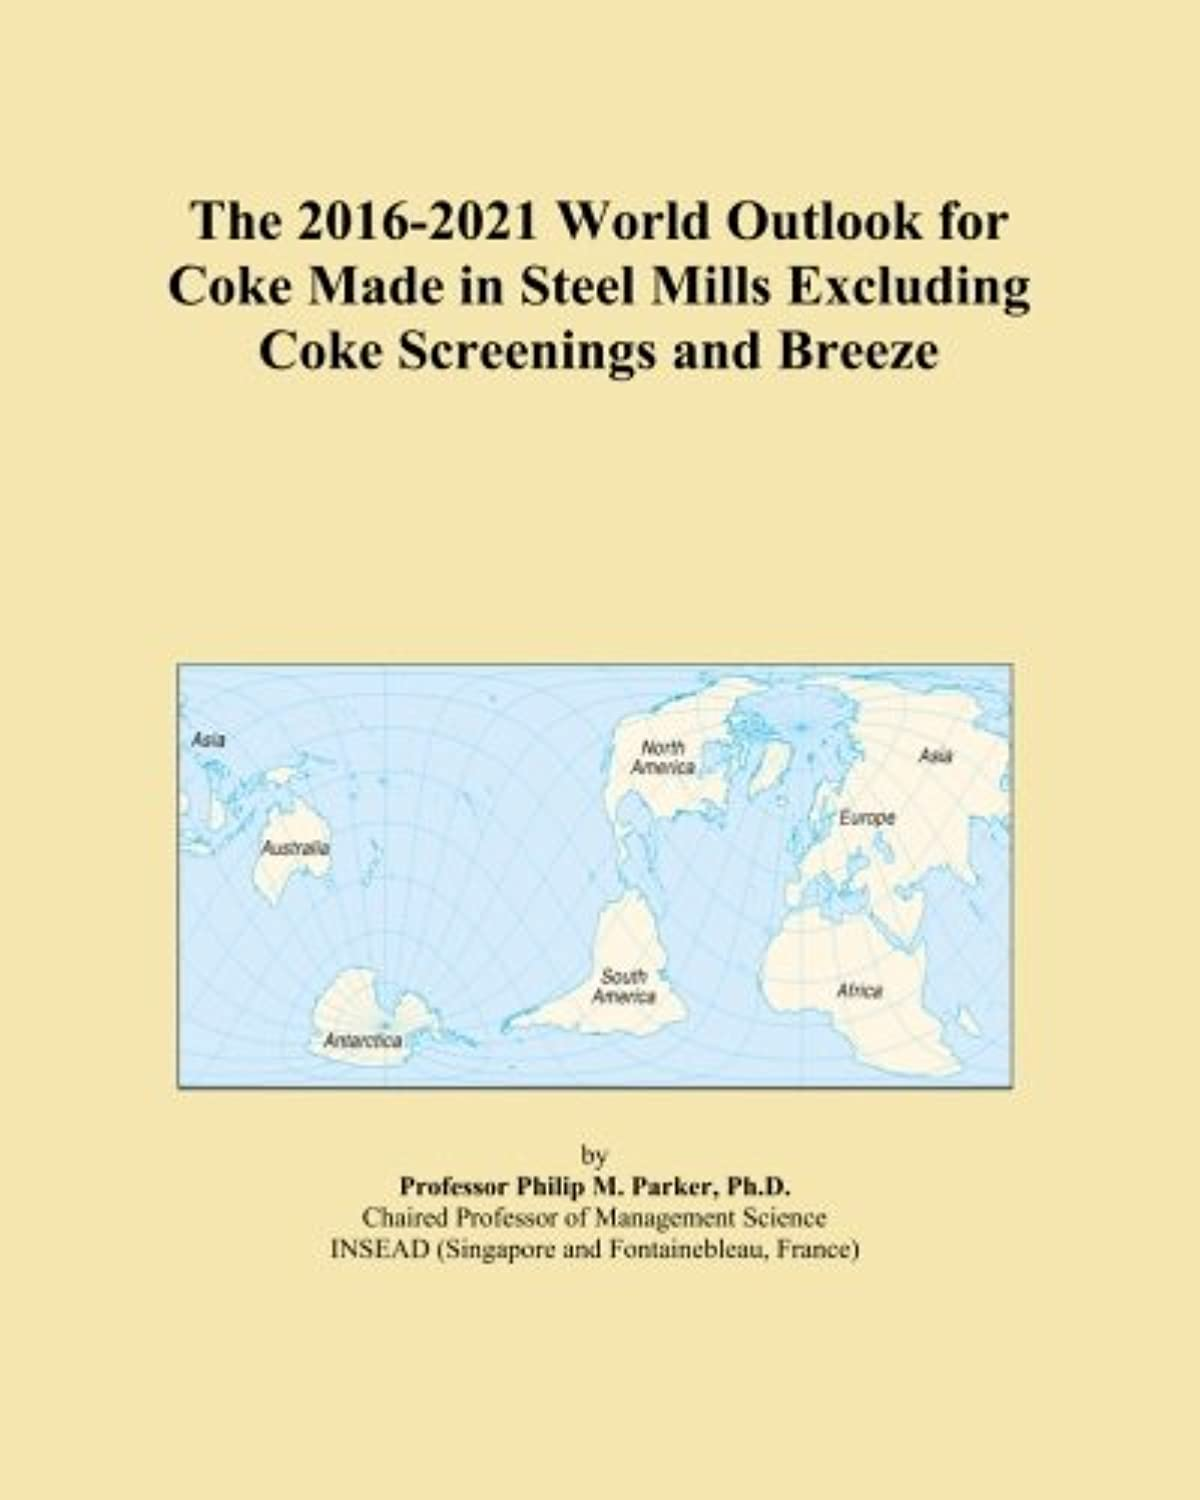 The 2016-2021 World Outlook for Coke Made in Steel Mills Excluding Coke Screenings and Breeze